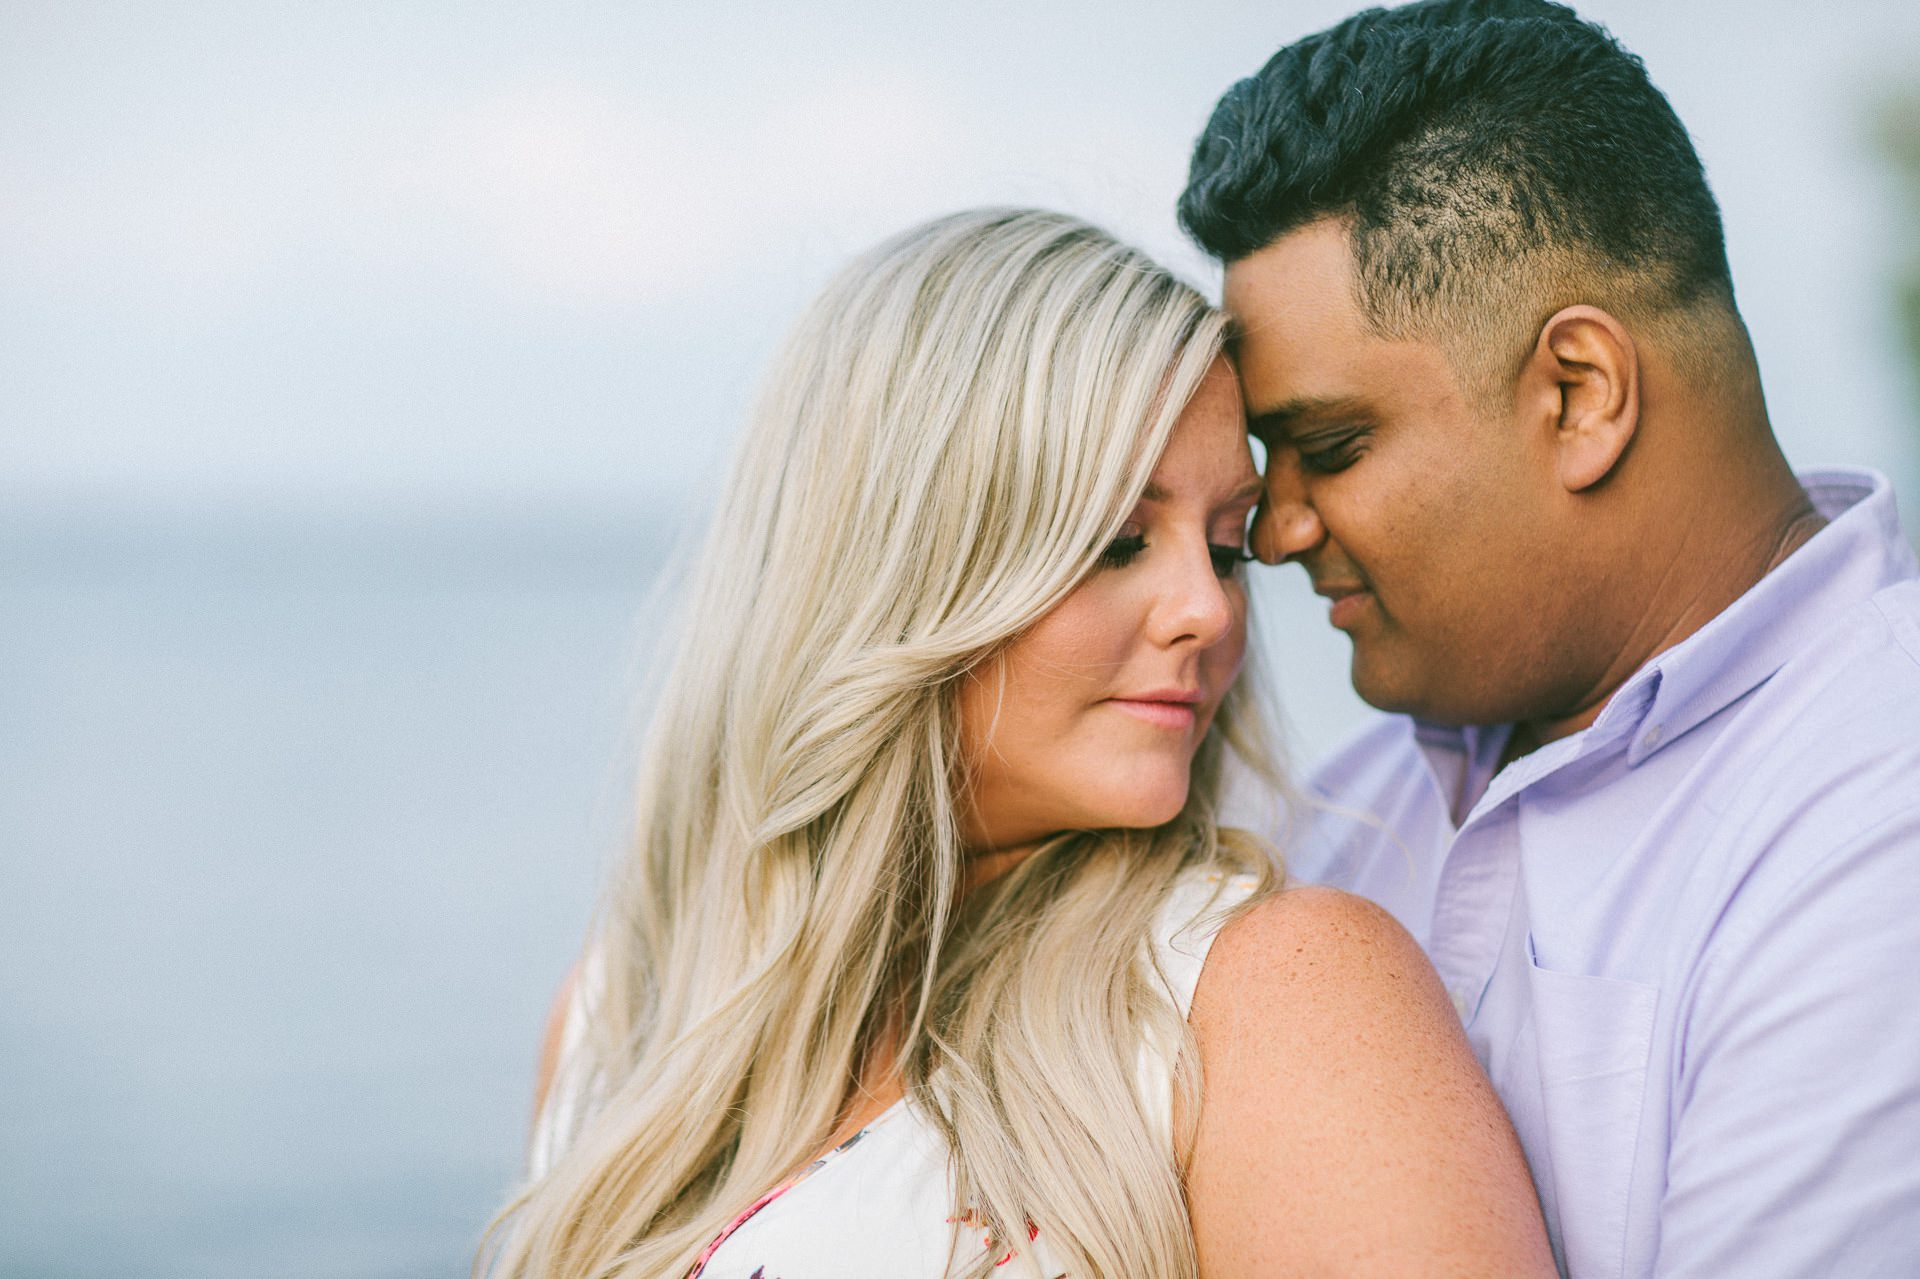 Edgewater Beach Engagement Session in Cleveland 1.jpg